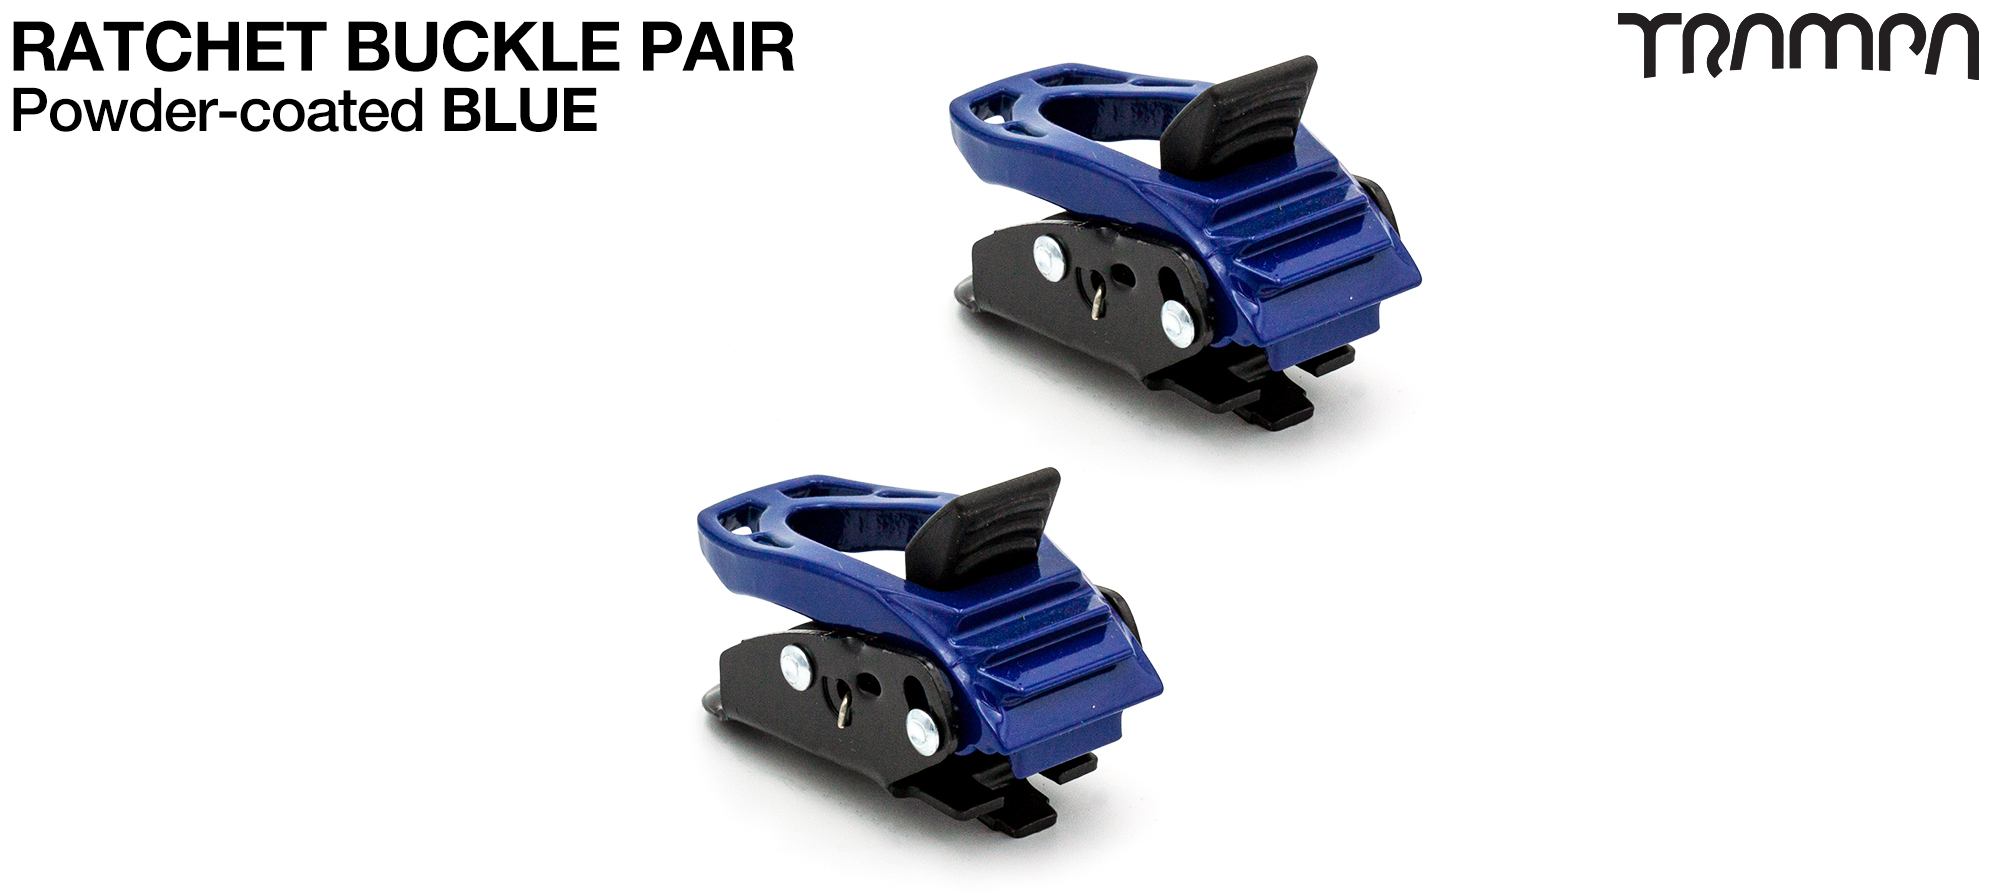 BLUE Powder Coated Ratchet Buckle (+£12.50)